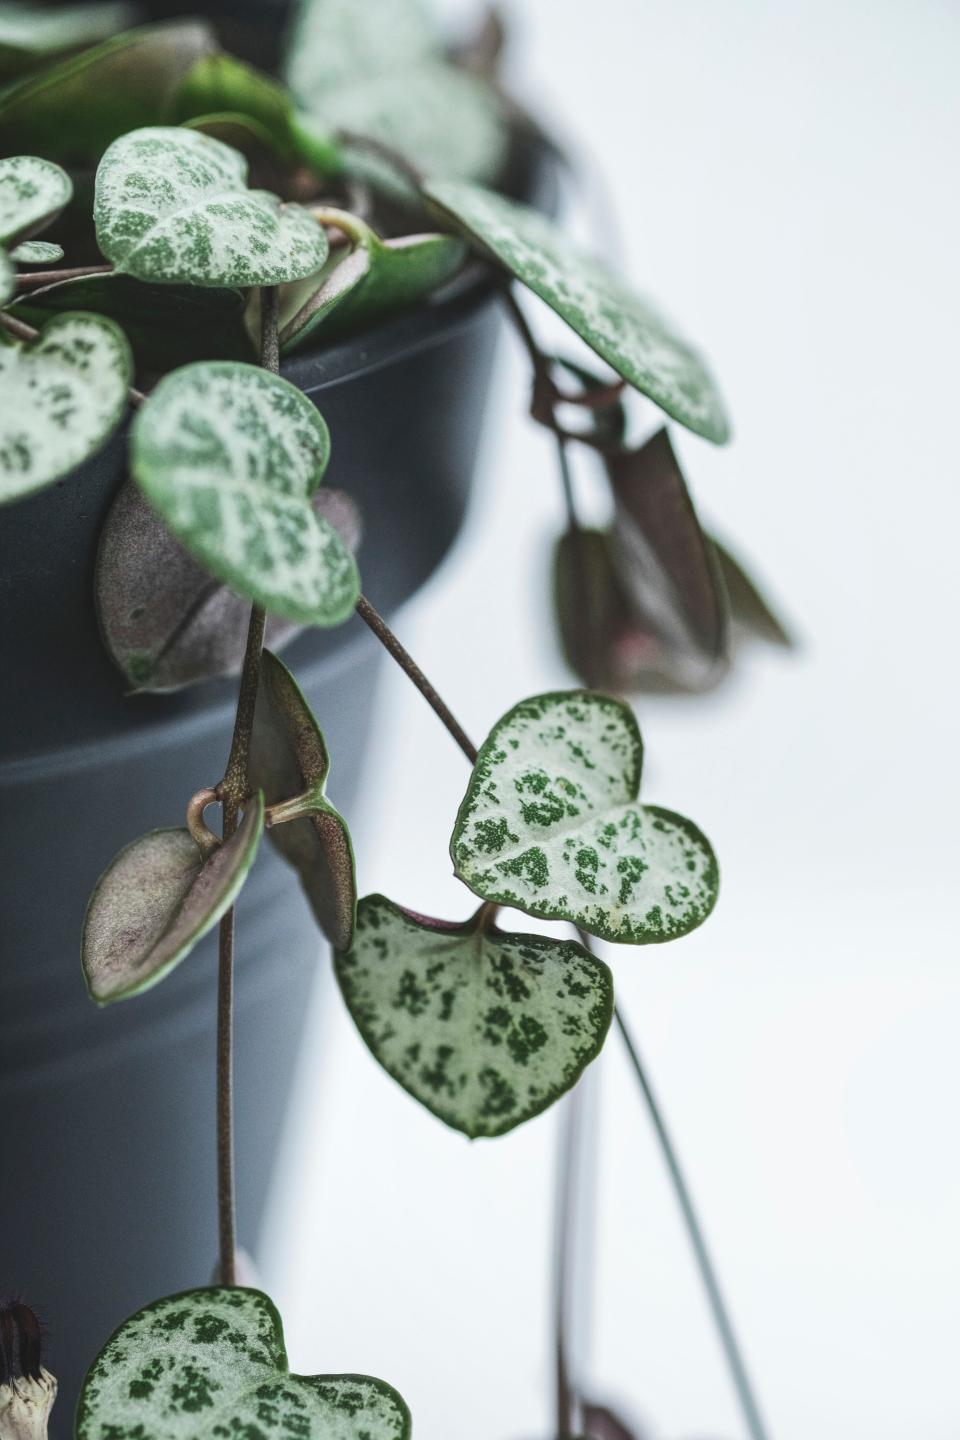 Instagrammed house plants - string of hearts